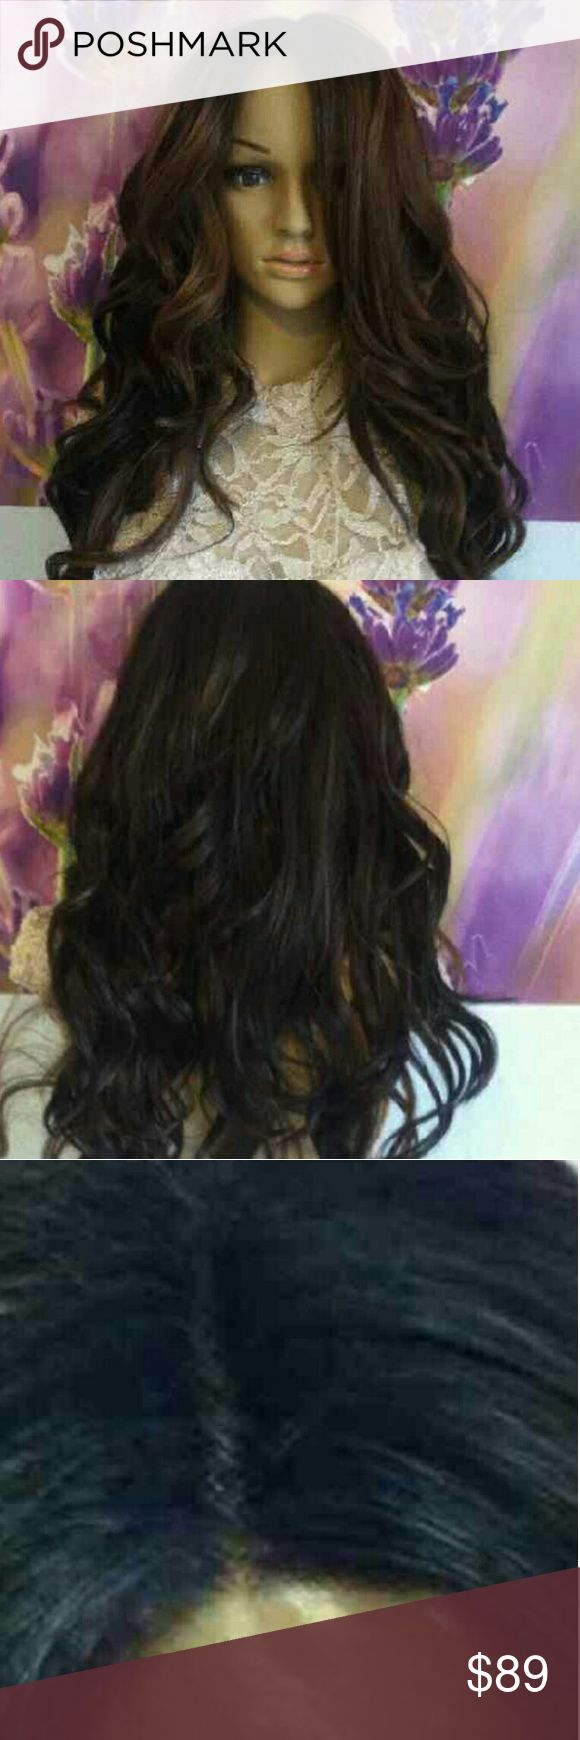 """Dark brown Lace front wig Ombre Dark Roots To Two shades of brown.   24 """"  You will be able to use your heated styling tools such as curling irons and blow dryers.   Comes with adjustable cap Combs included. Breathable elastic Wig Cap 2-3 day processing time. Other"""